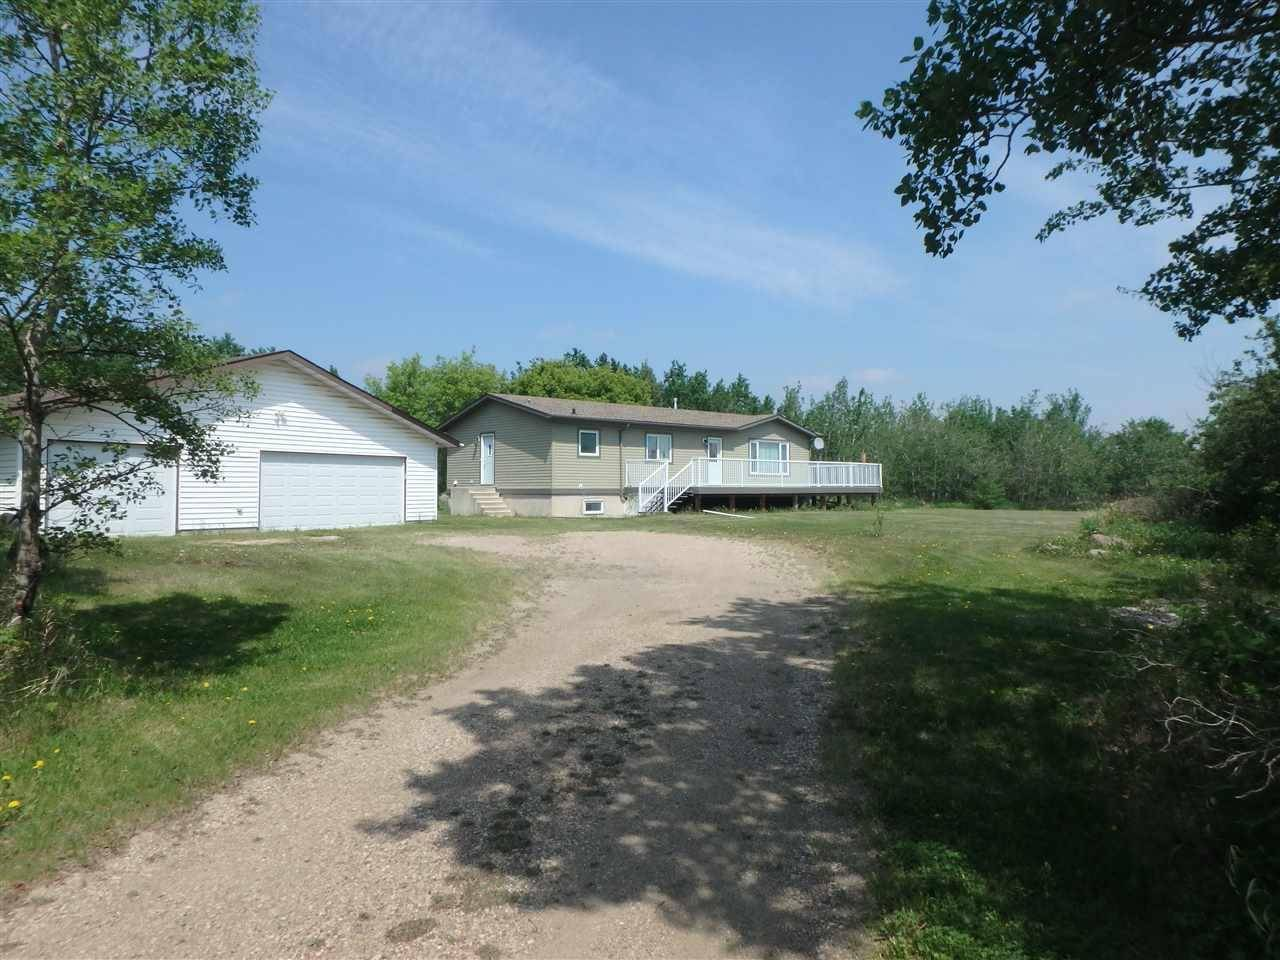 House for sale at 50142 Rge Rd Rural Leduc County Alberta - MLS: E4174474